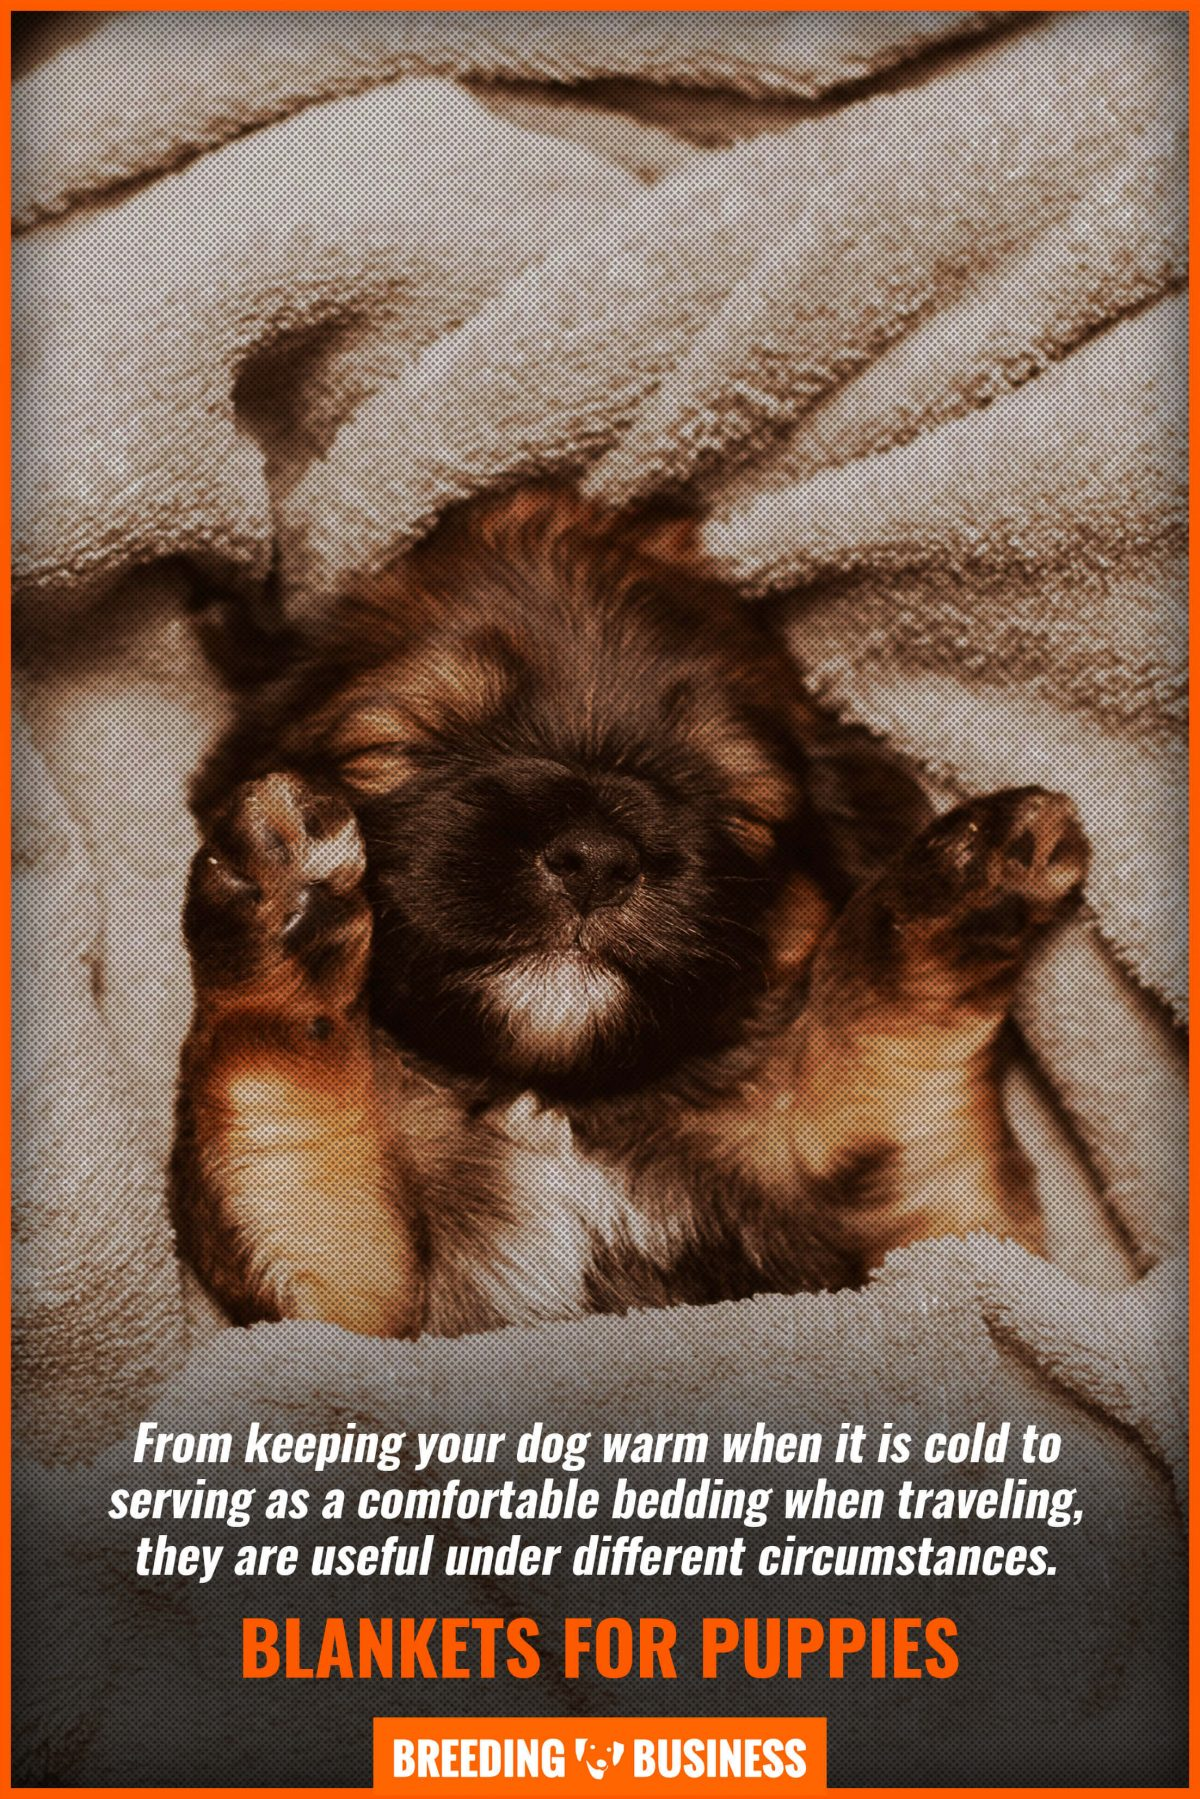 blankets for puppies